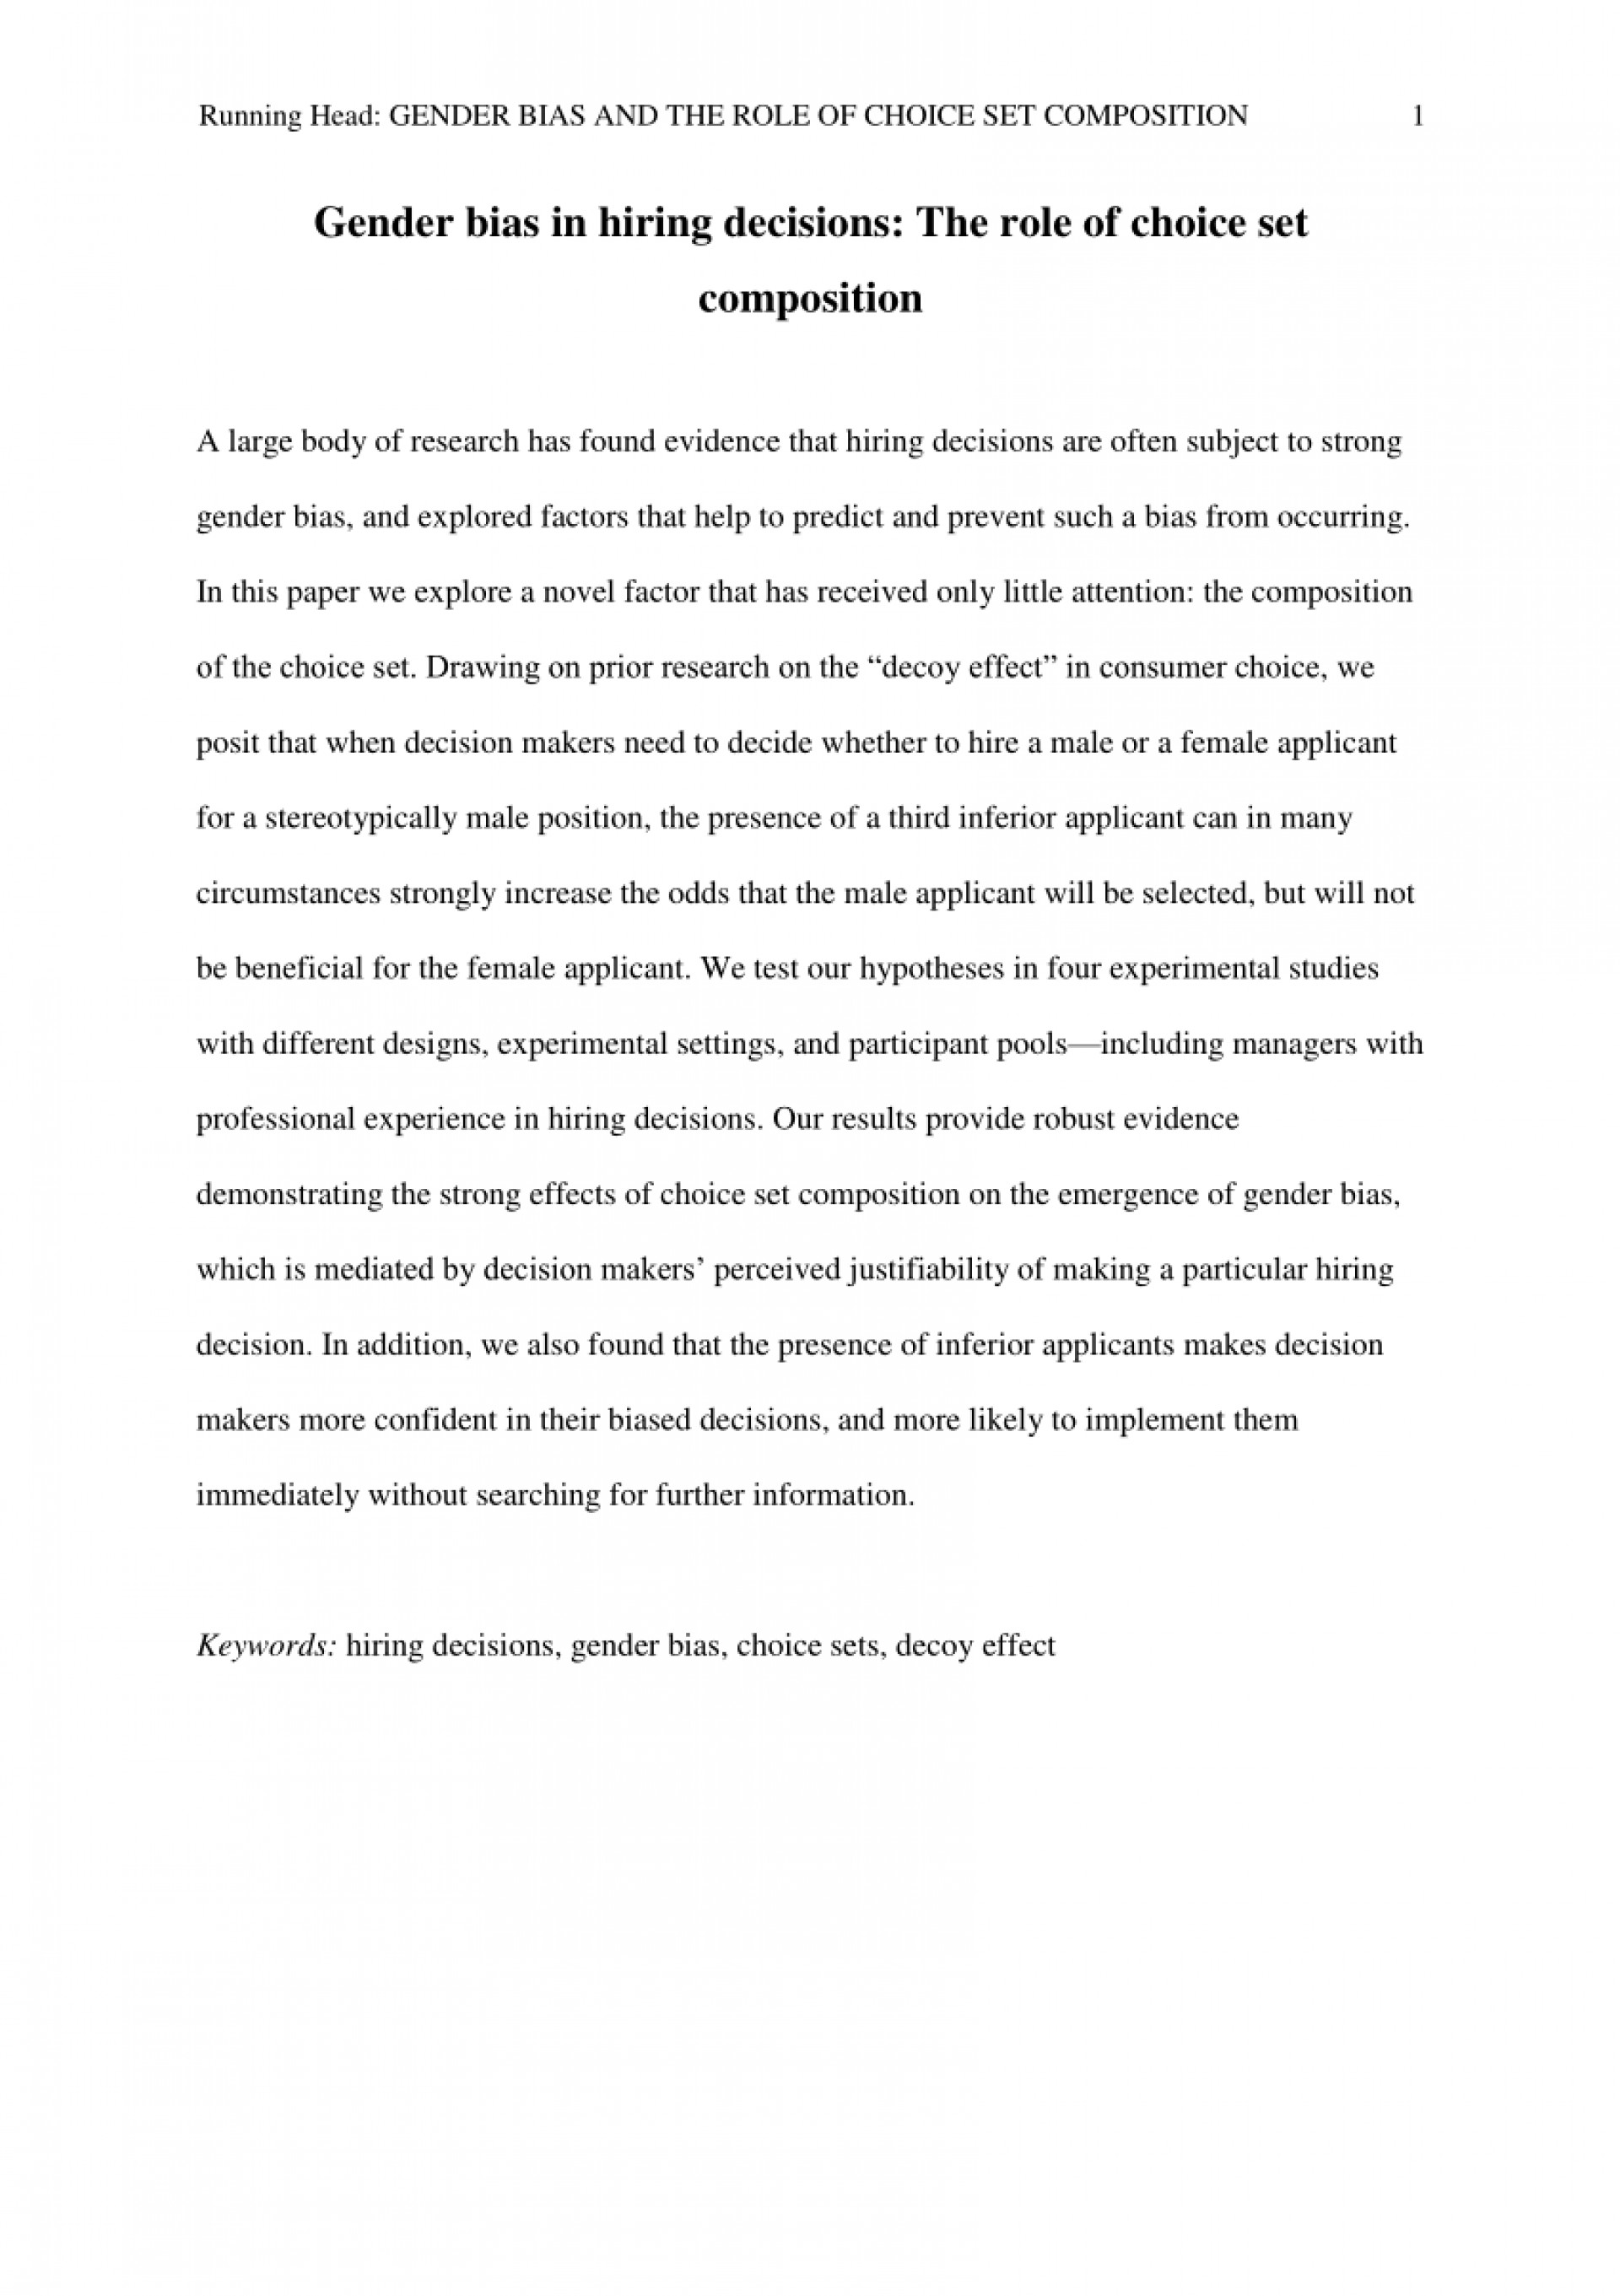 004 Conclusion Outline Research Paper Gender Role Essays Roles In Society Essay Topics Thesis 2388831673 On Fearsome 1920